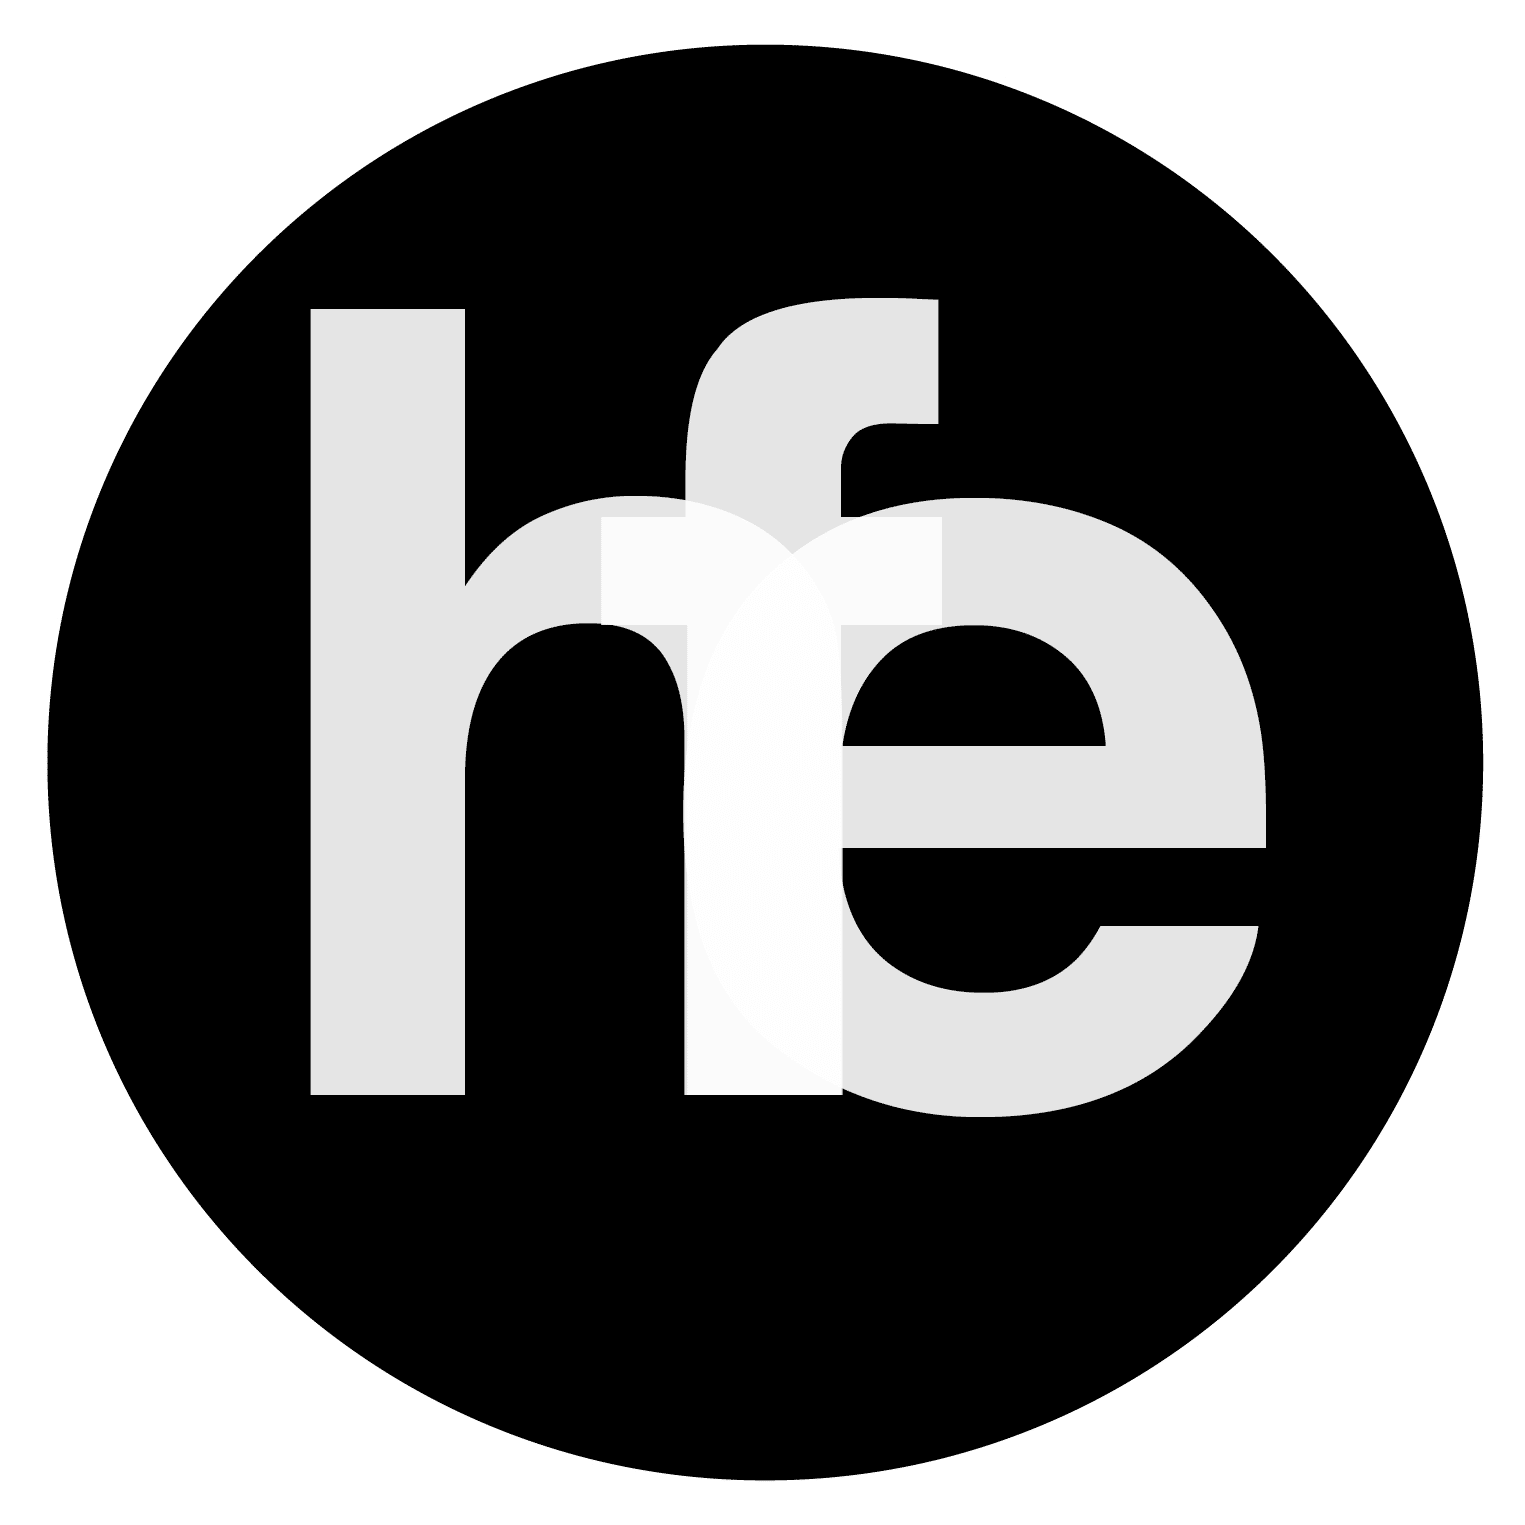 logo-humanitarian-for-empowerment-rond-noir-lettres-blanches